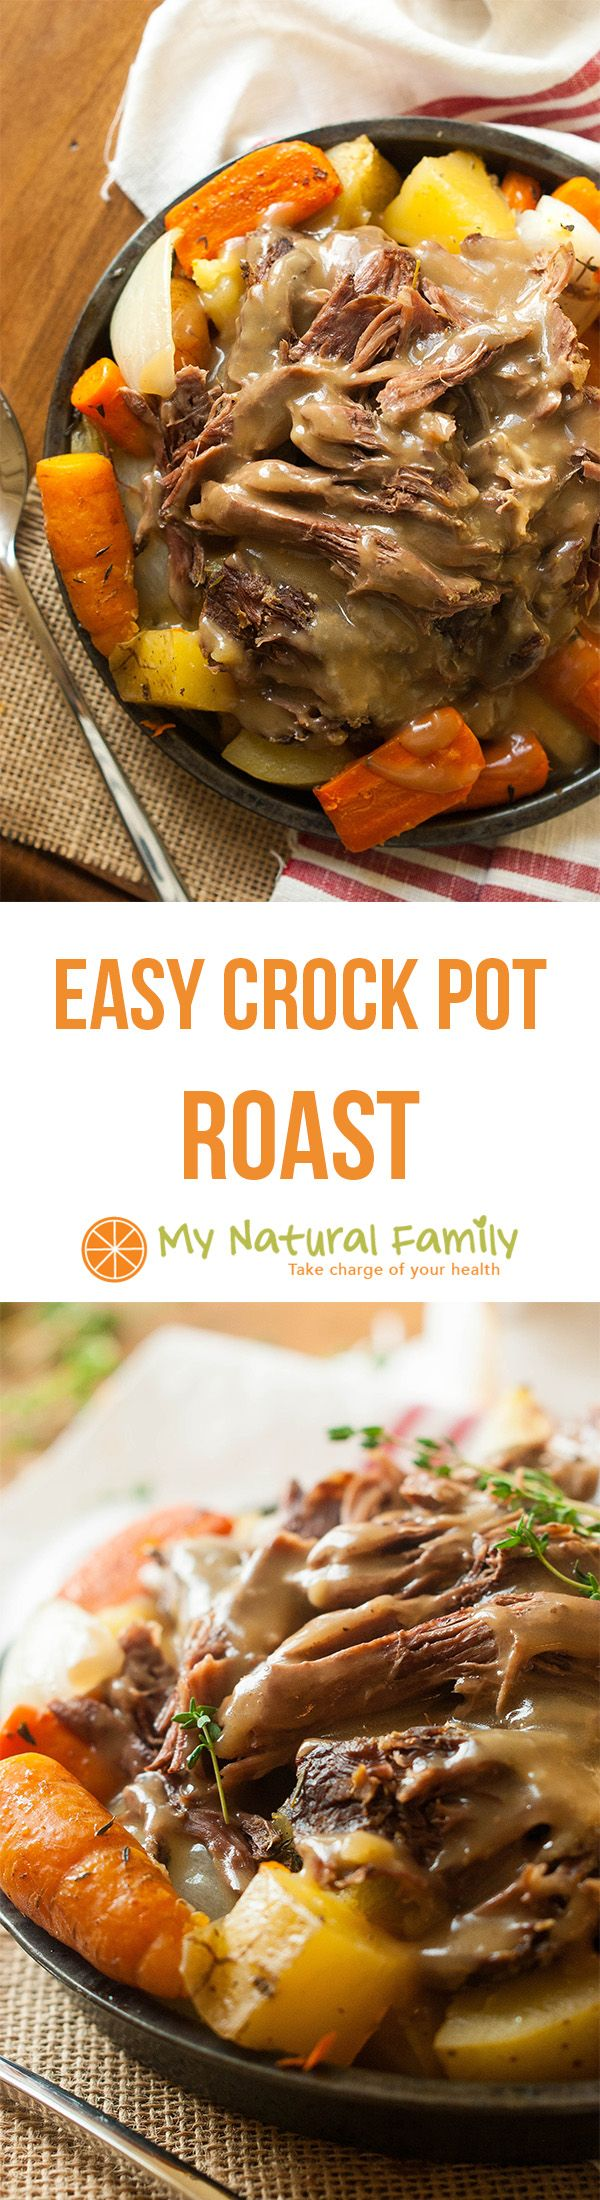 Easy Pot Roast Crock Pot Recipe {Clean Eating, Gluten Free} - throw the ingredients in your crock pot and forget about it until it's time to make the gravy from the drippings then enjoy! Make it Paleo